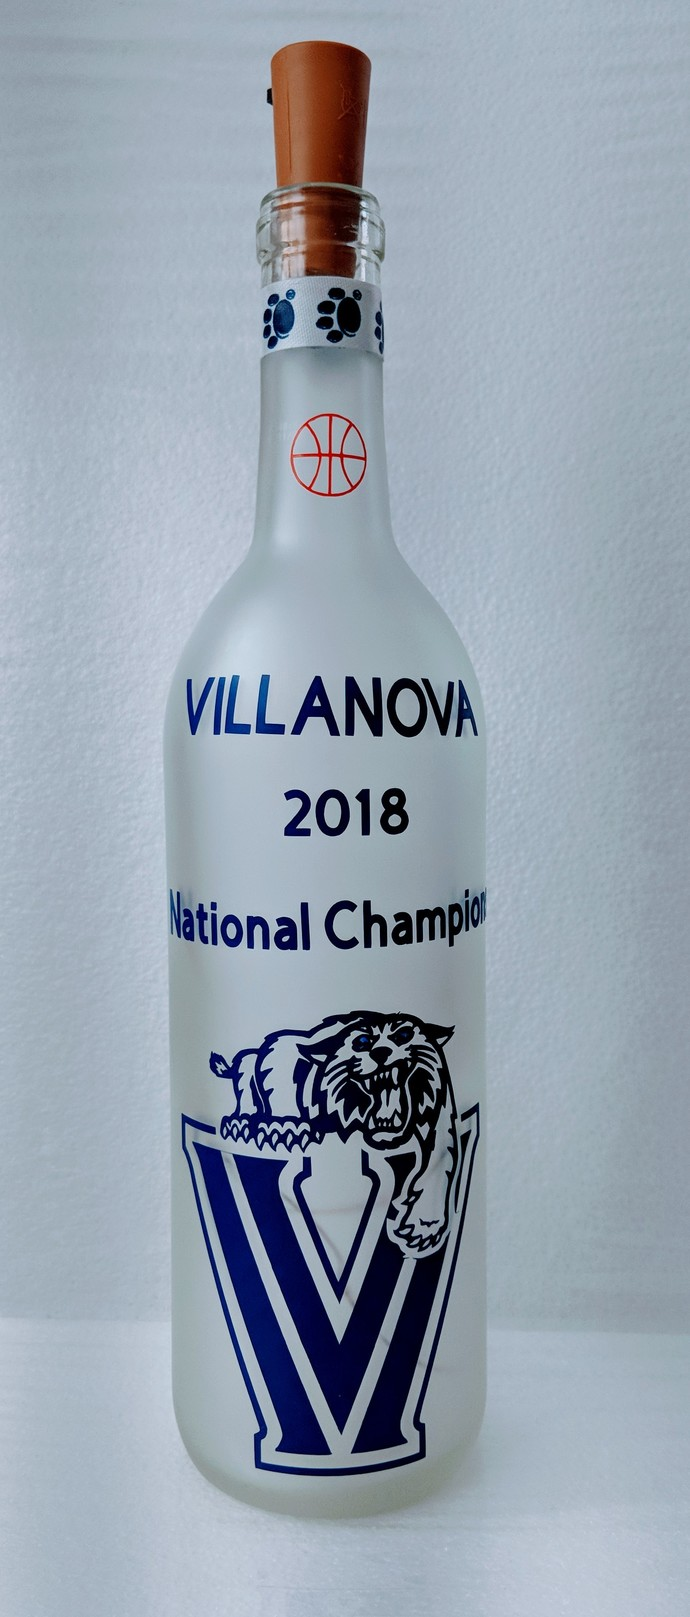 VILLANOVA 2018 Champions light bottle.